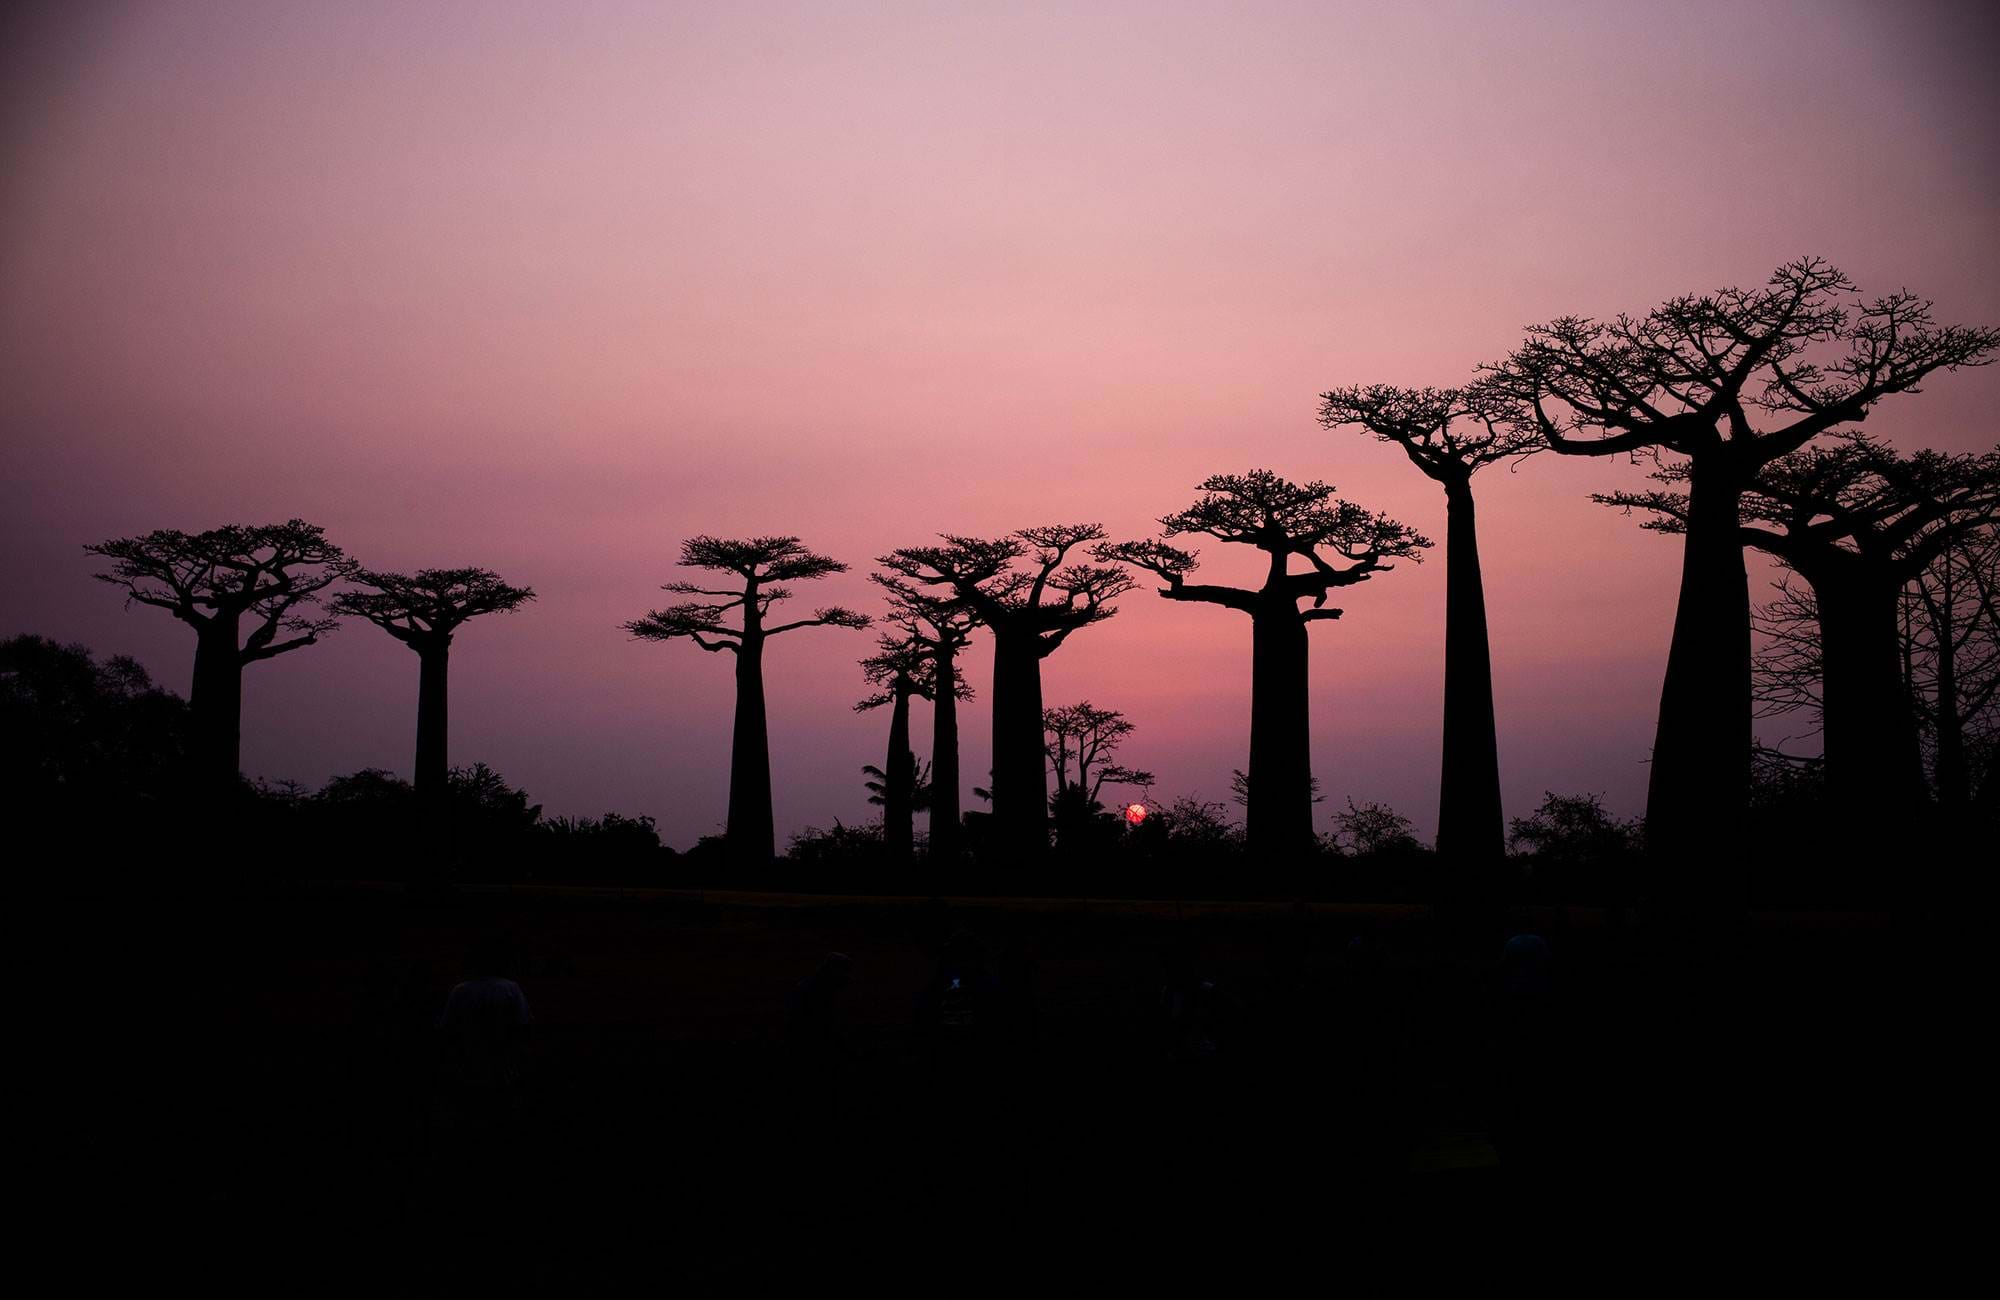 madagascar-baobab-trees-at-sunset